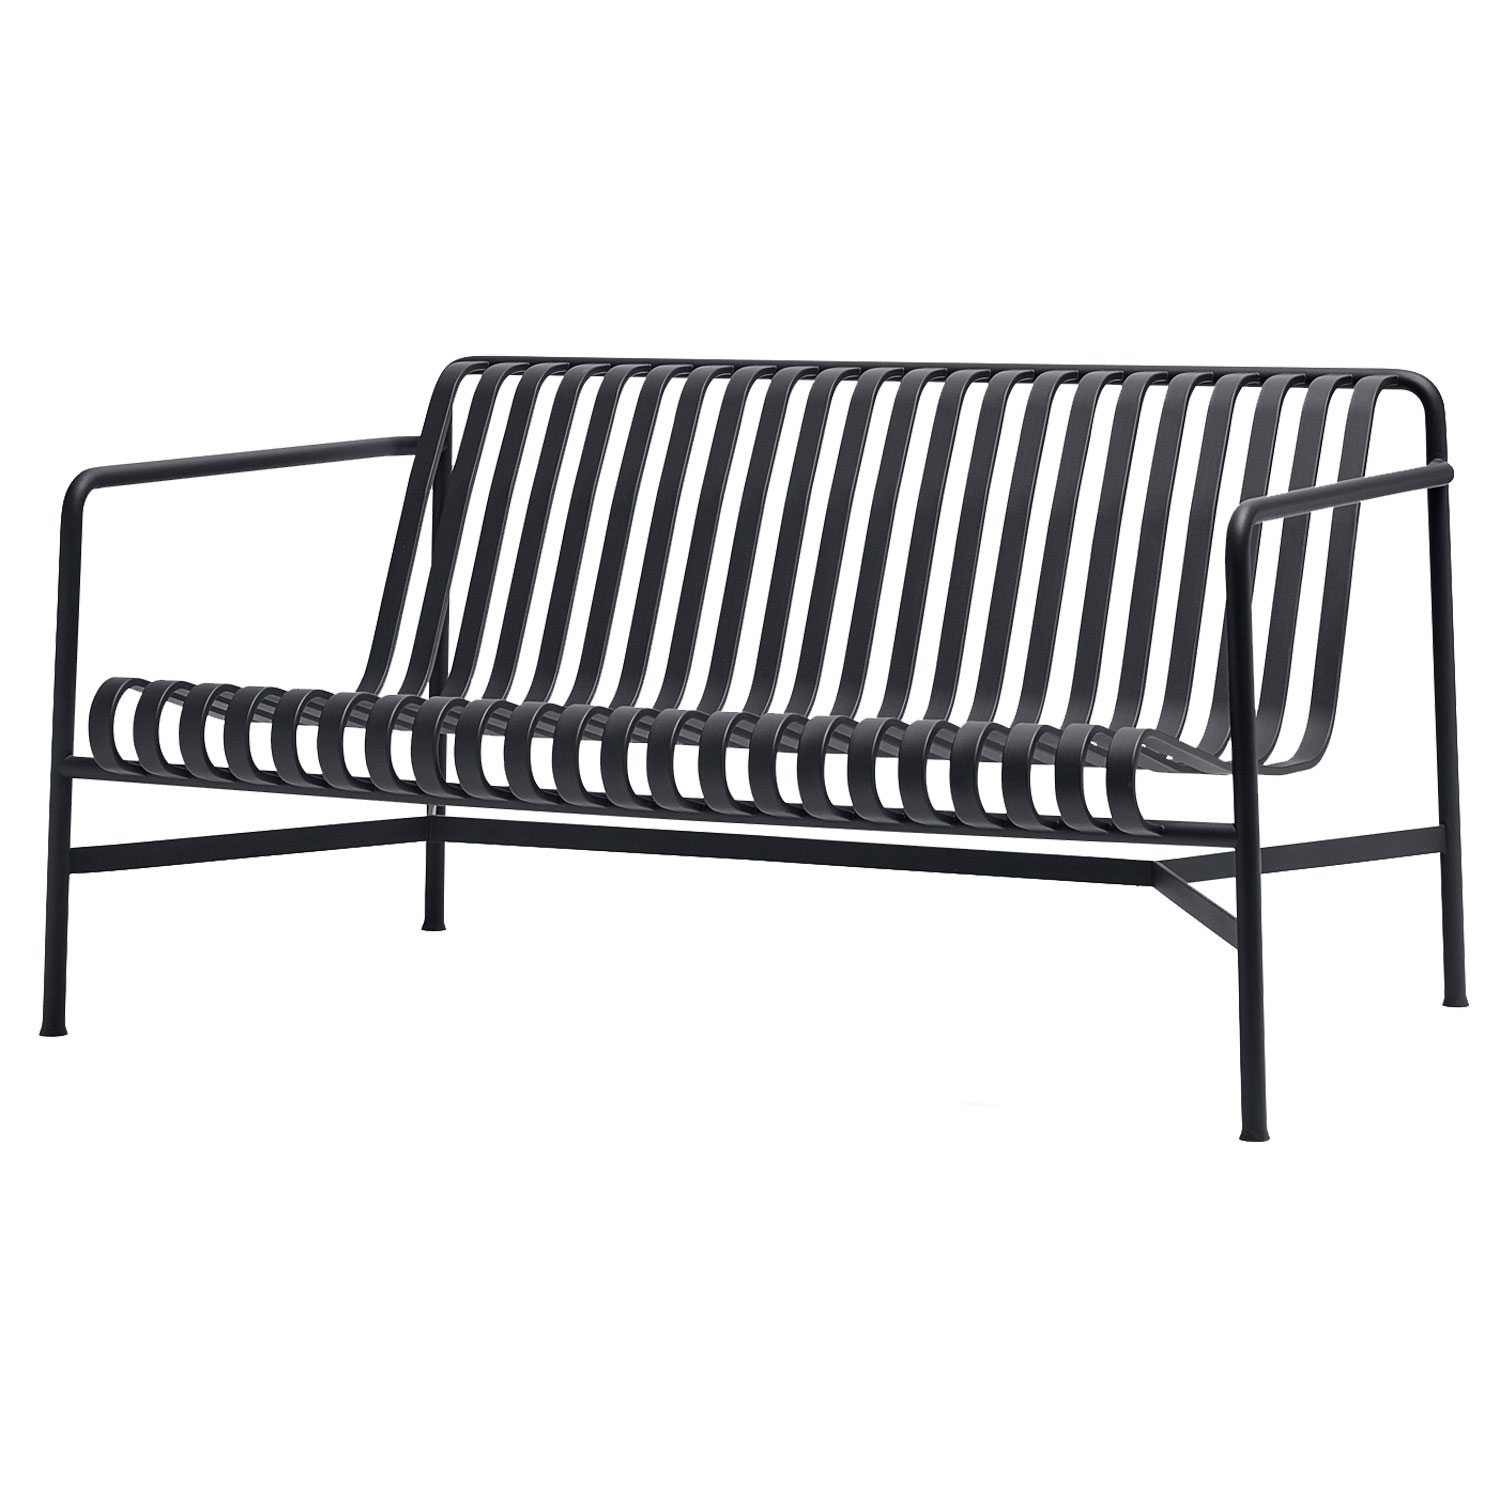 Palissade Loungesoffa, Anthracite